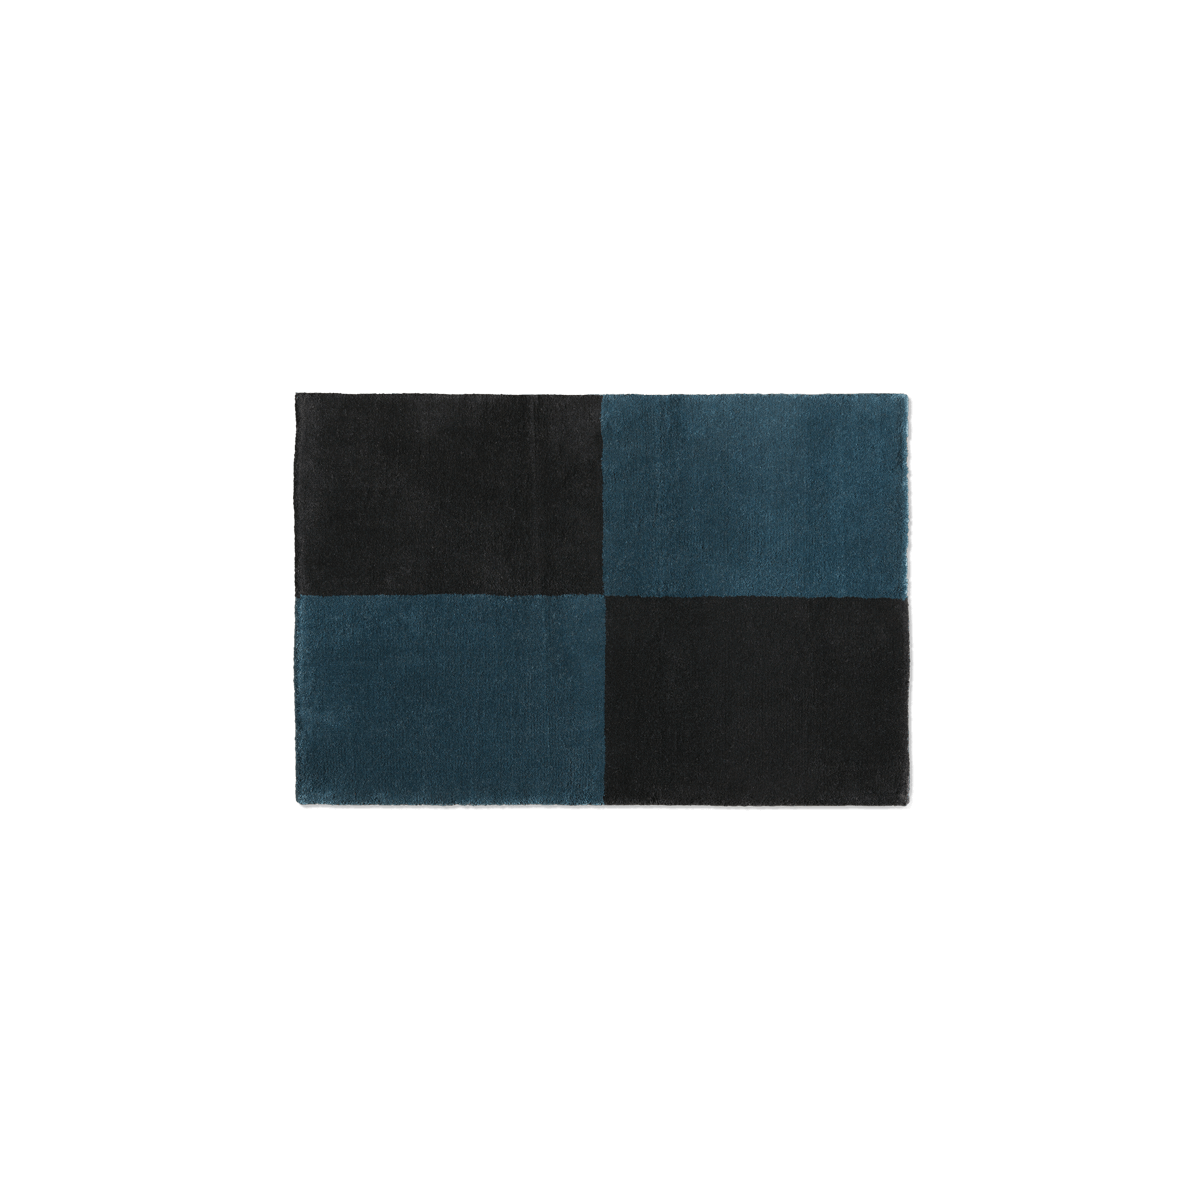 Plush doormat in the color Teal and Black. The rug is divided into four squares.